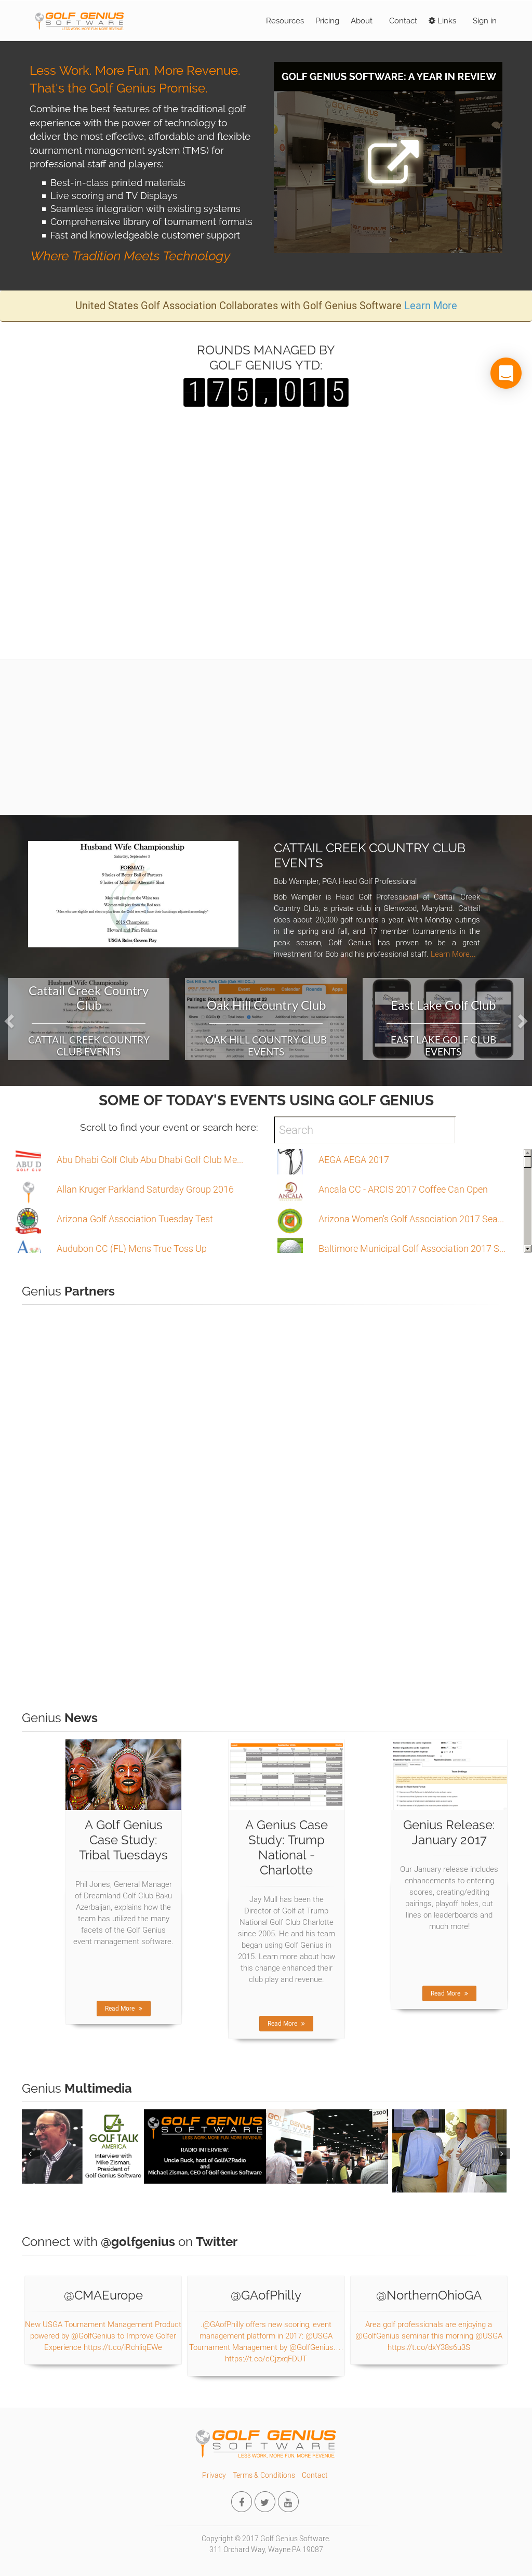 Golf Genius Software Competitors, Revenue and Employees